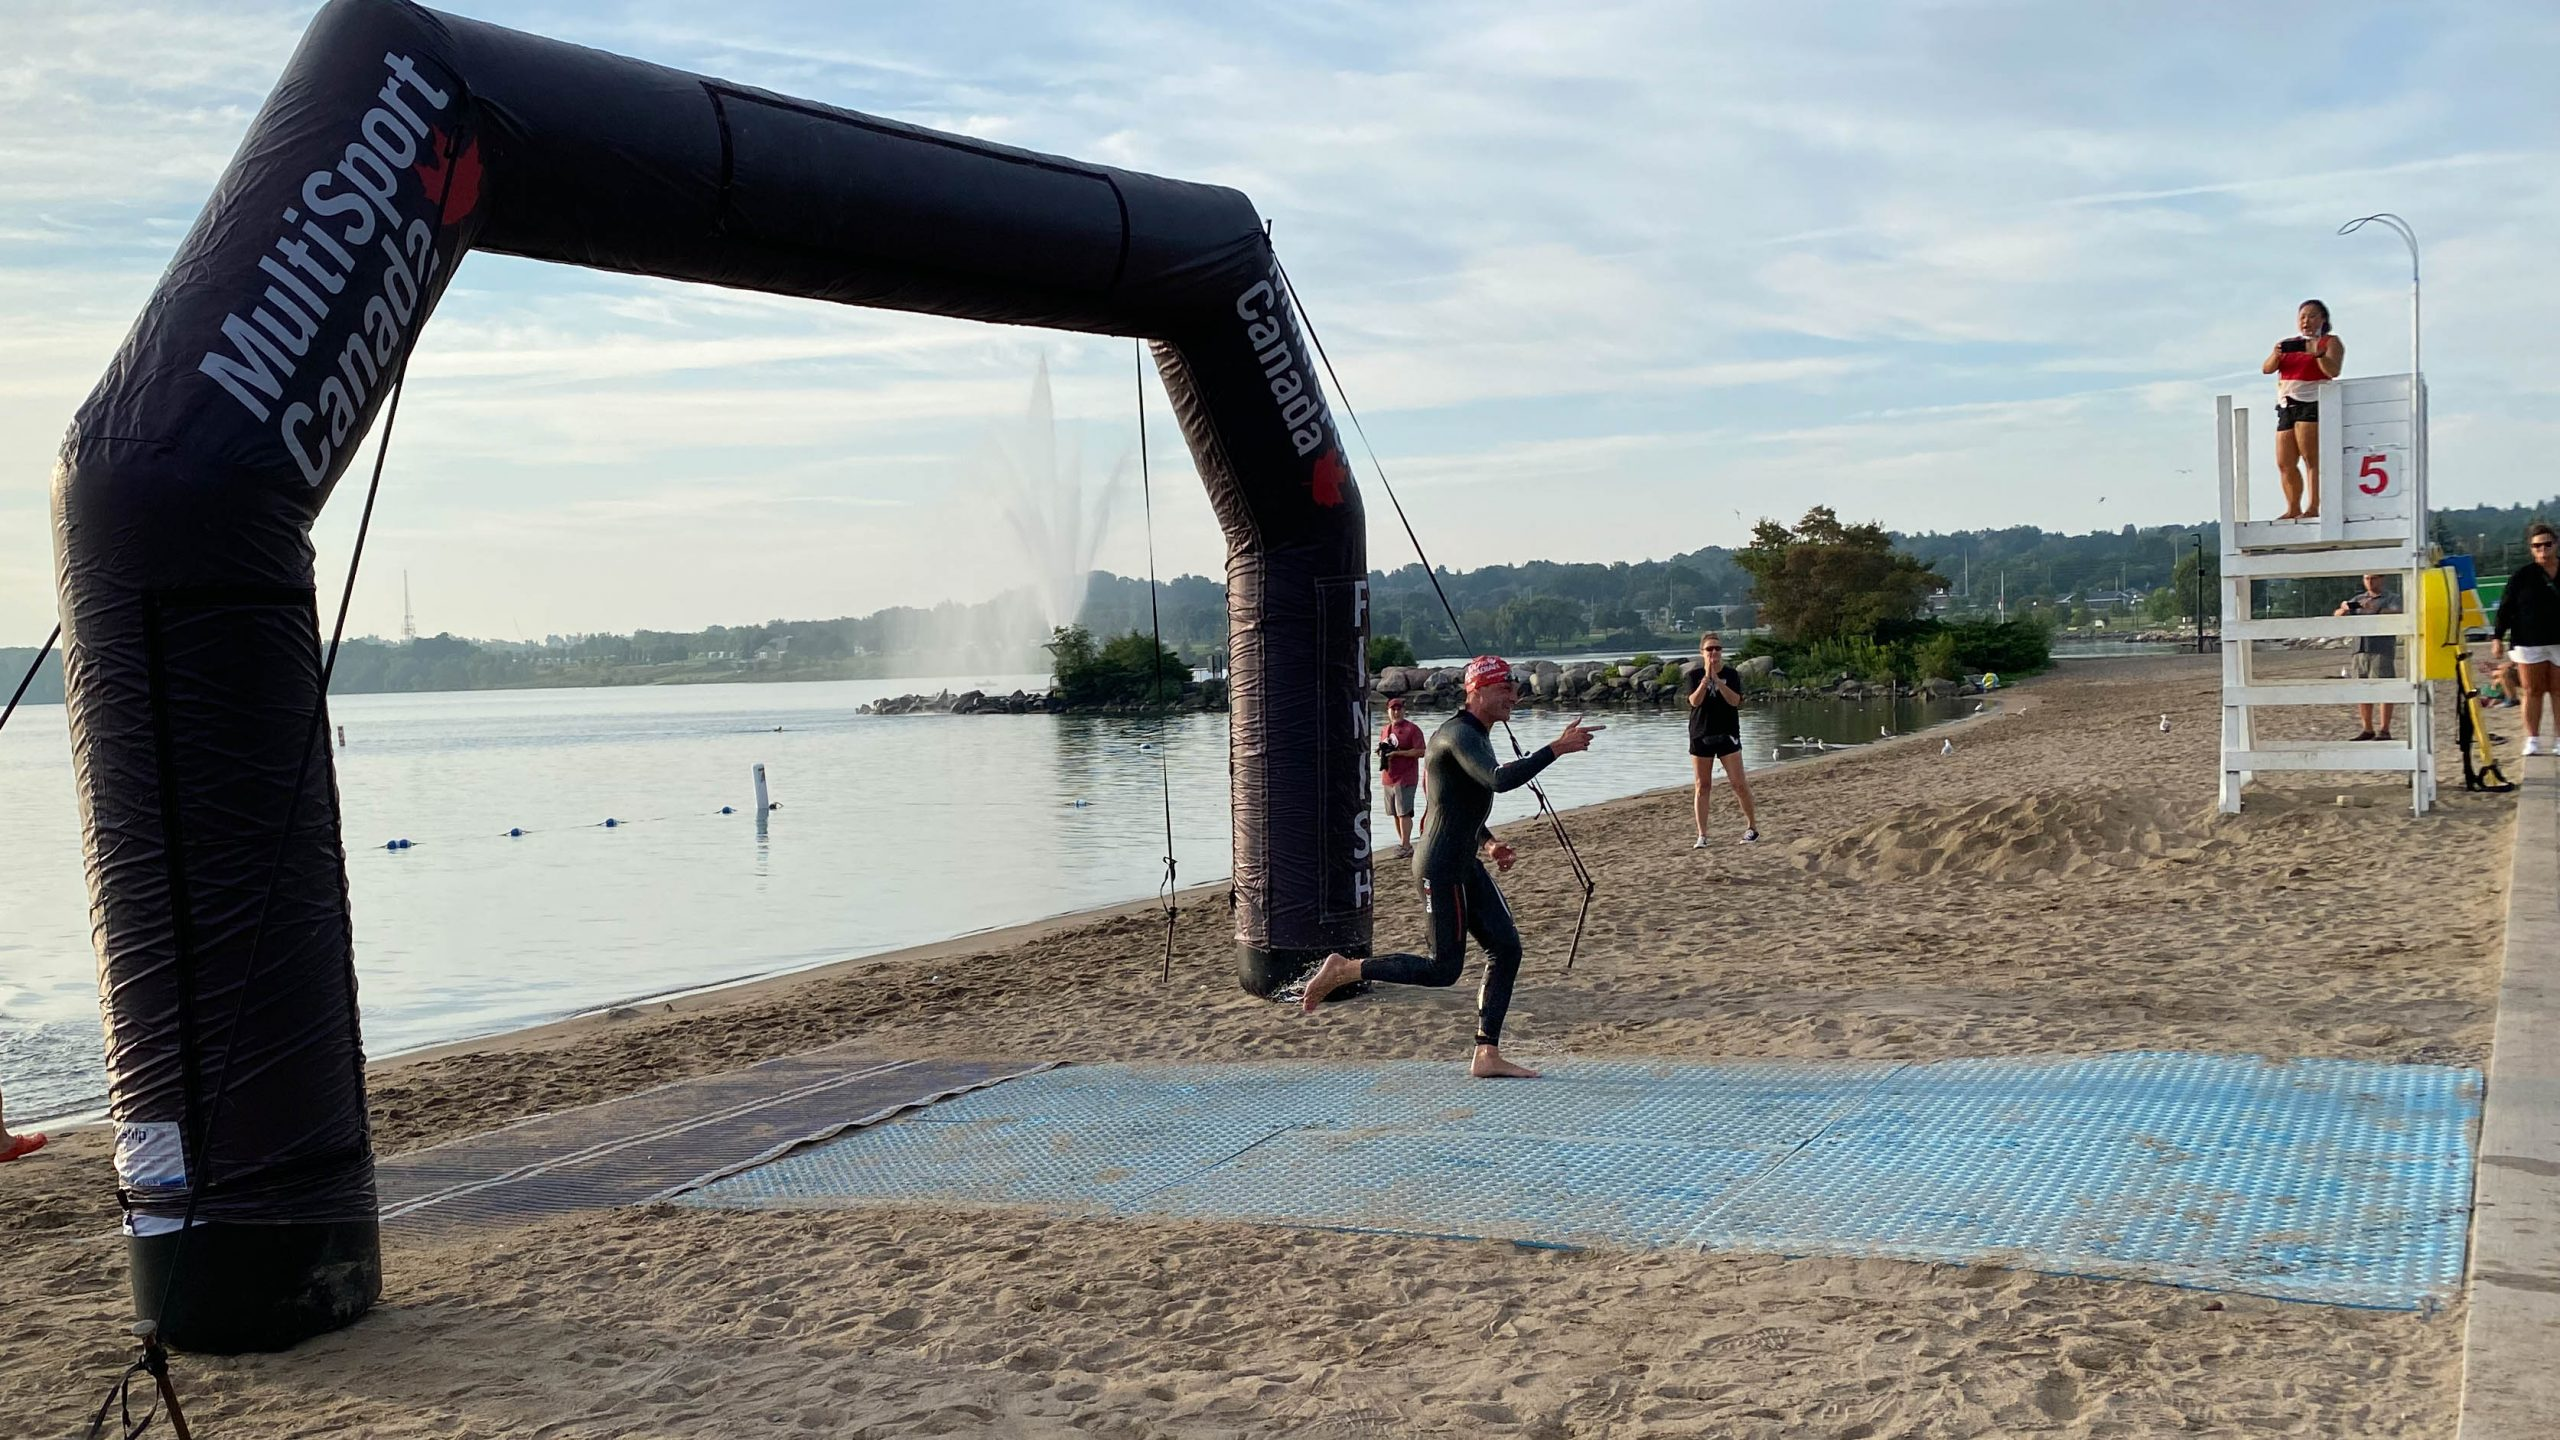 Jessie the Elf first out of the water, at the 2021 Barrie Triathlon